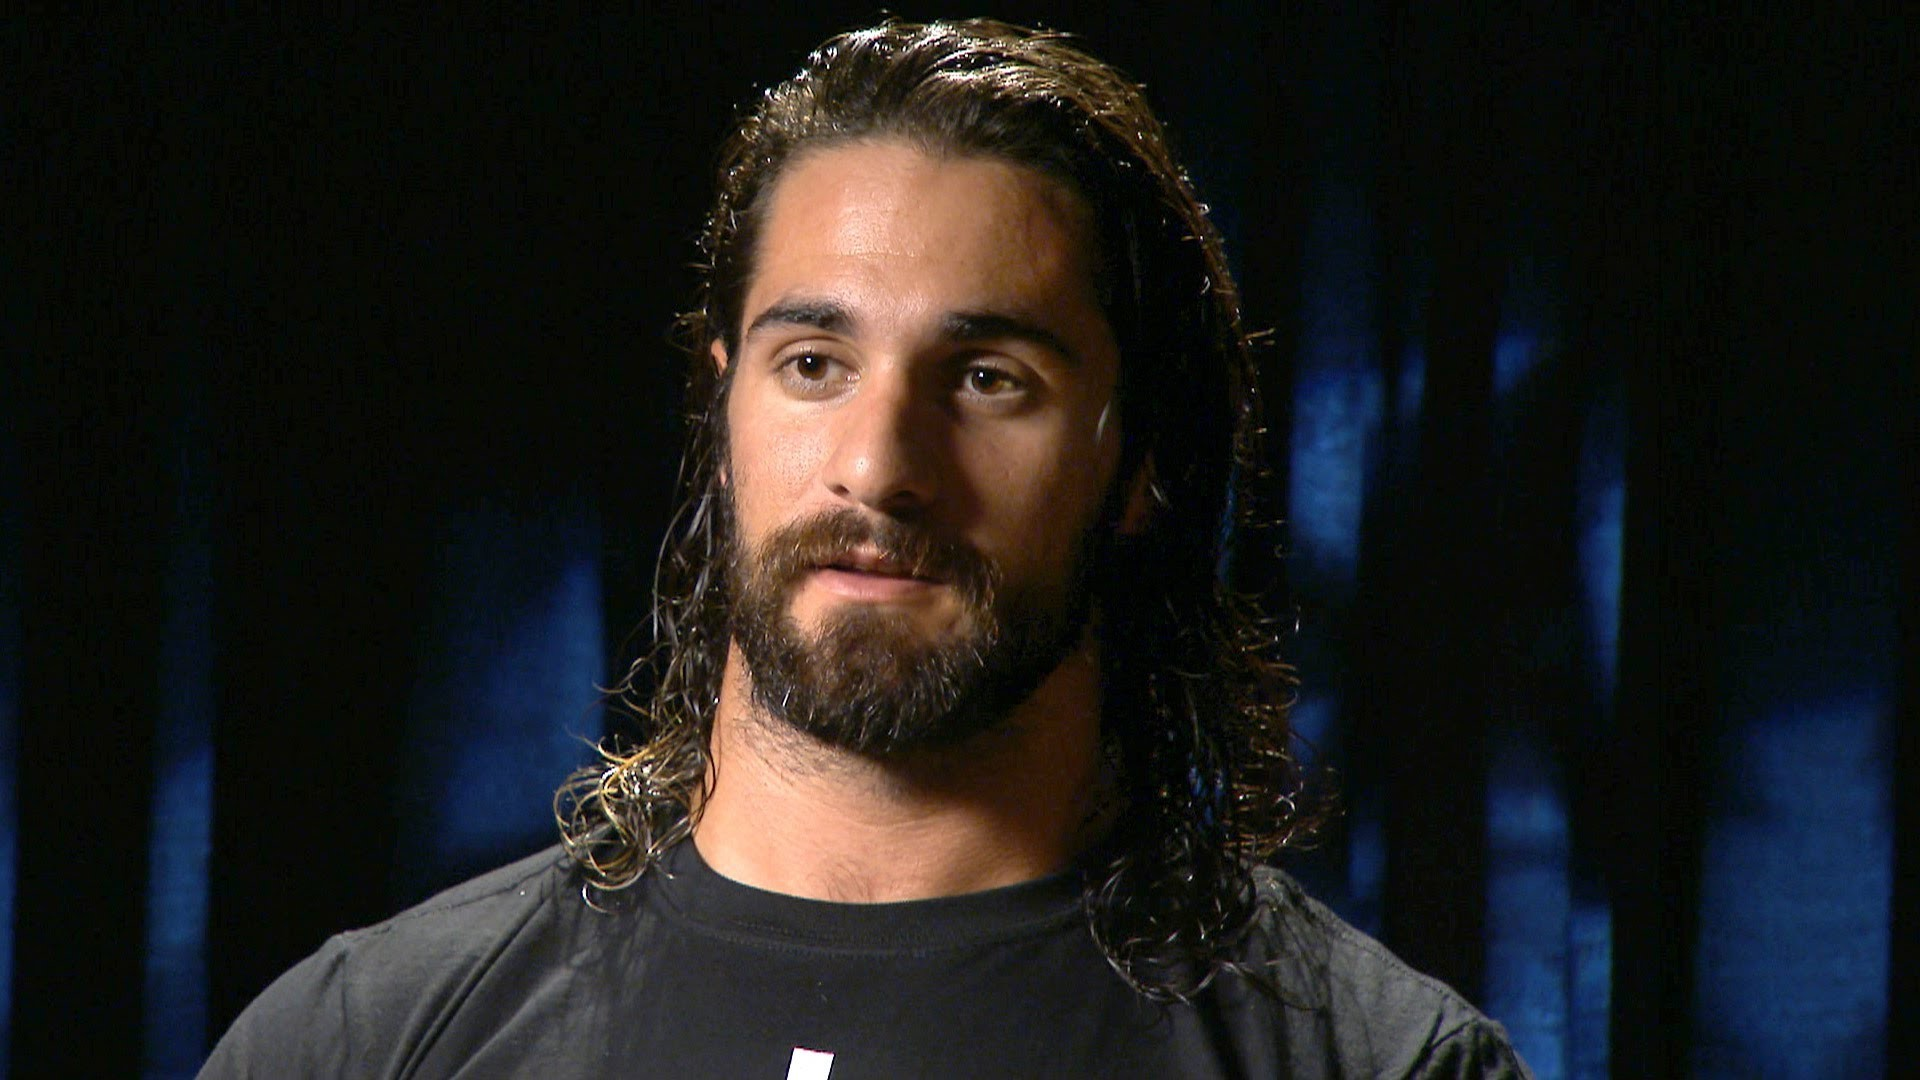 Seth Rollins & Roman Reigns Video Package Confusing